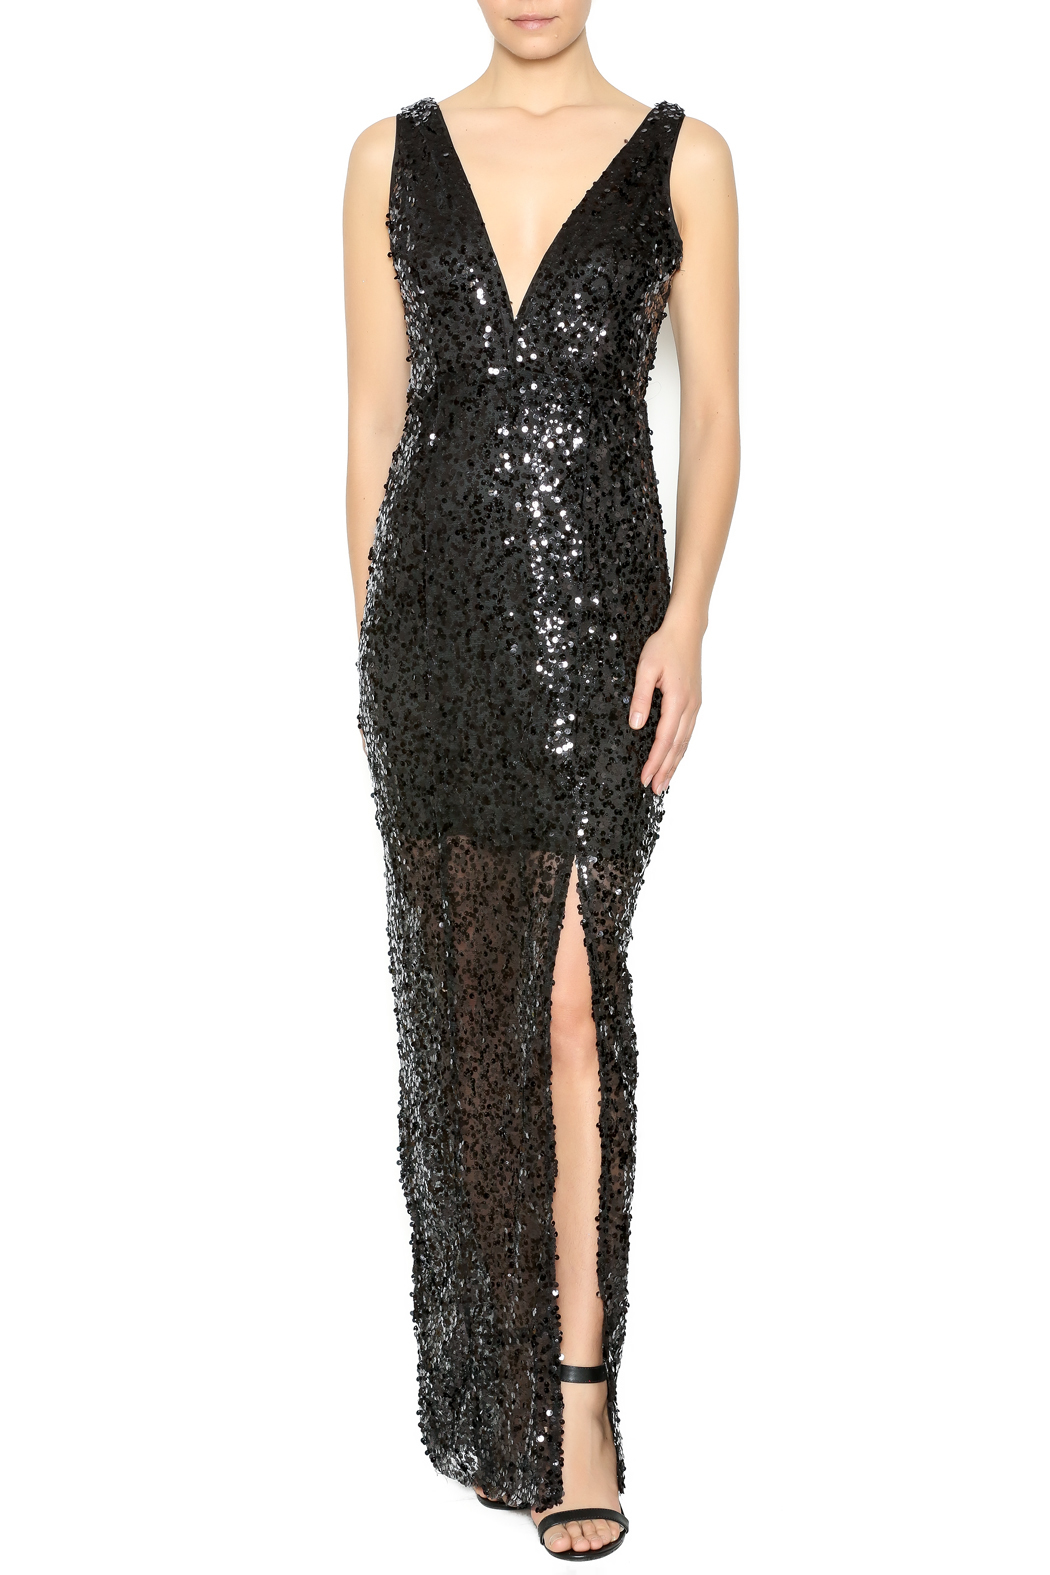 maniju Black Sequin Gown from New York City by Dor L\'Dor — Shoptiques